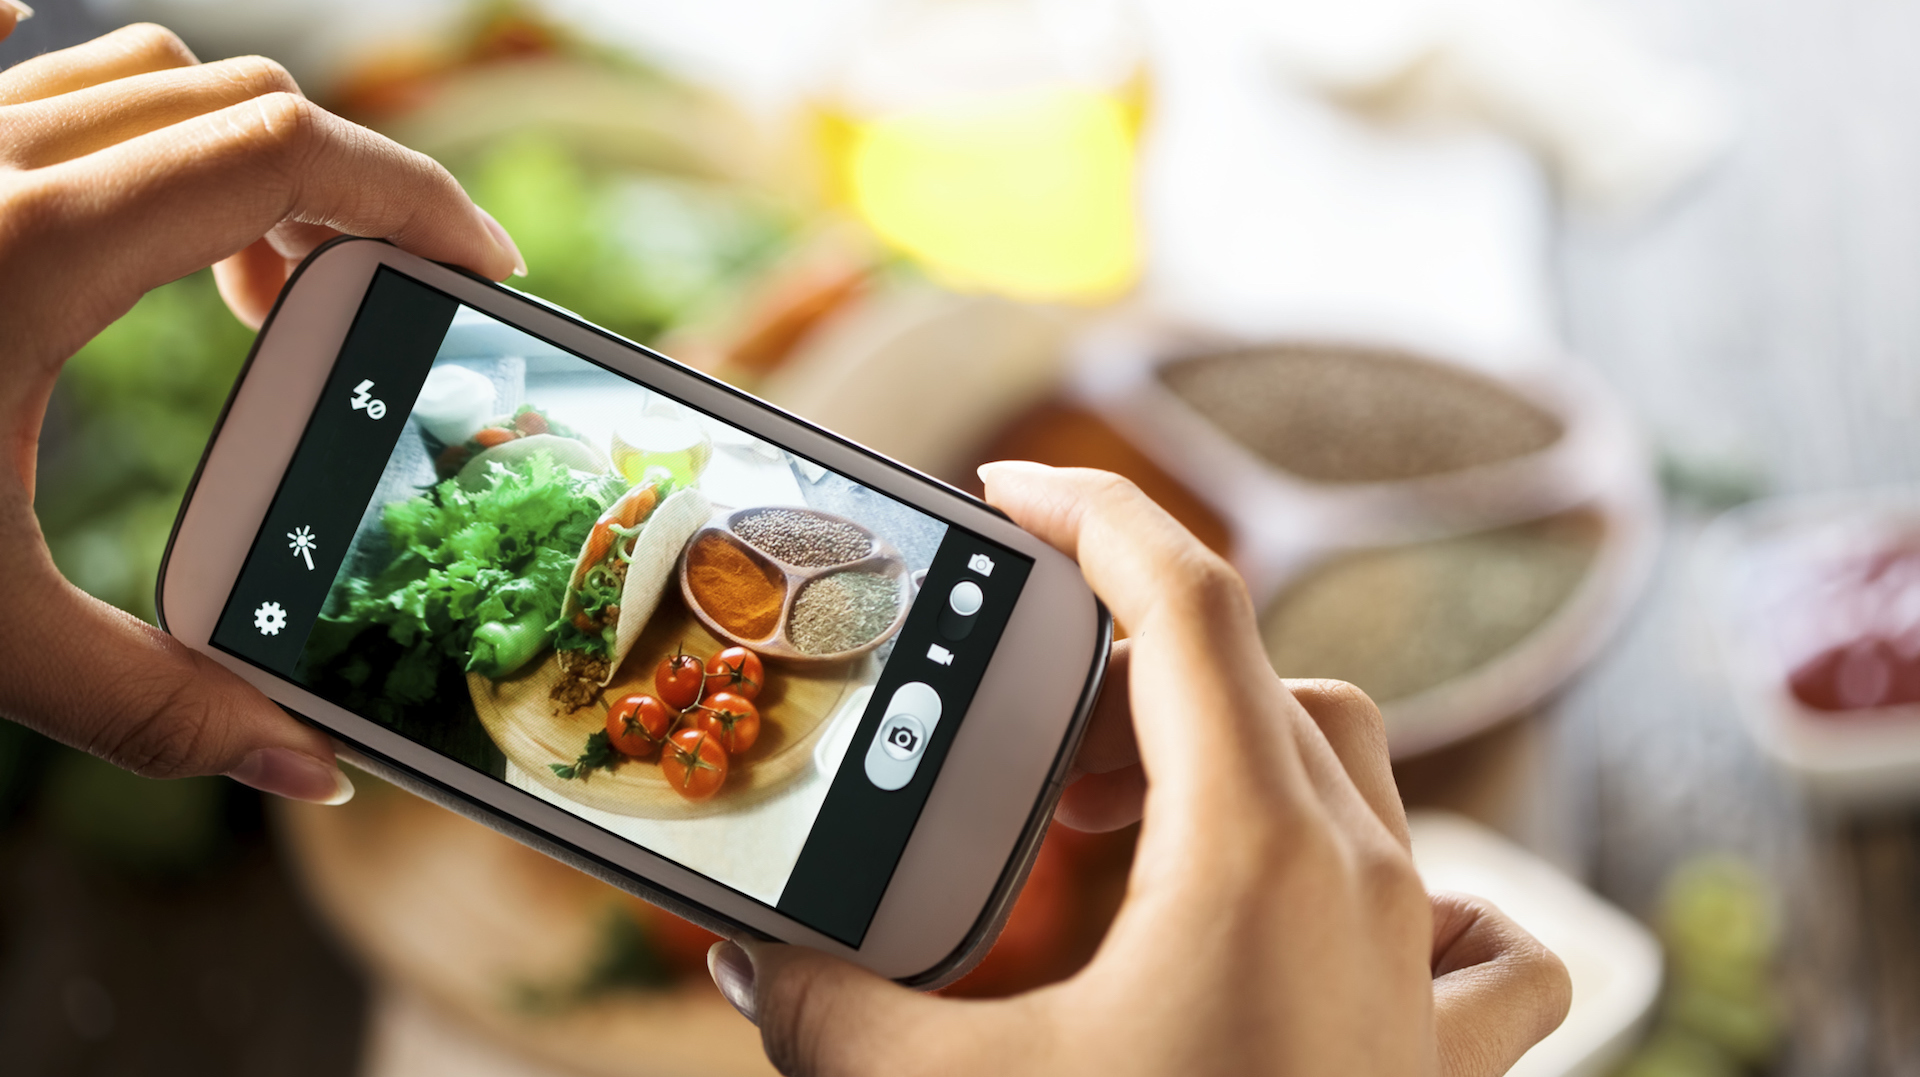 Wish to be an ultimate food blogger? Read on!